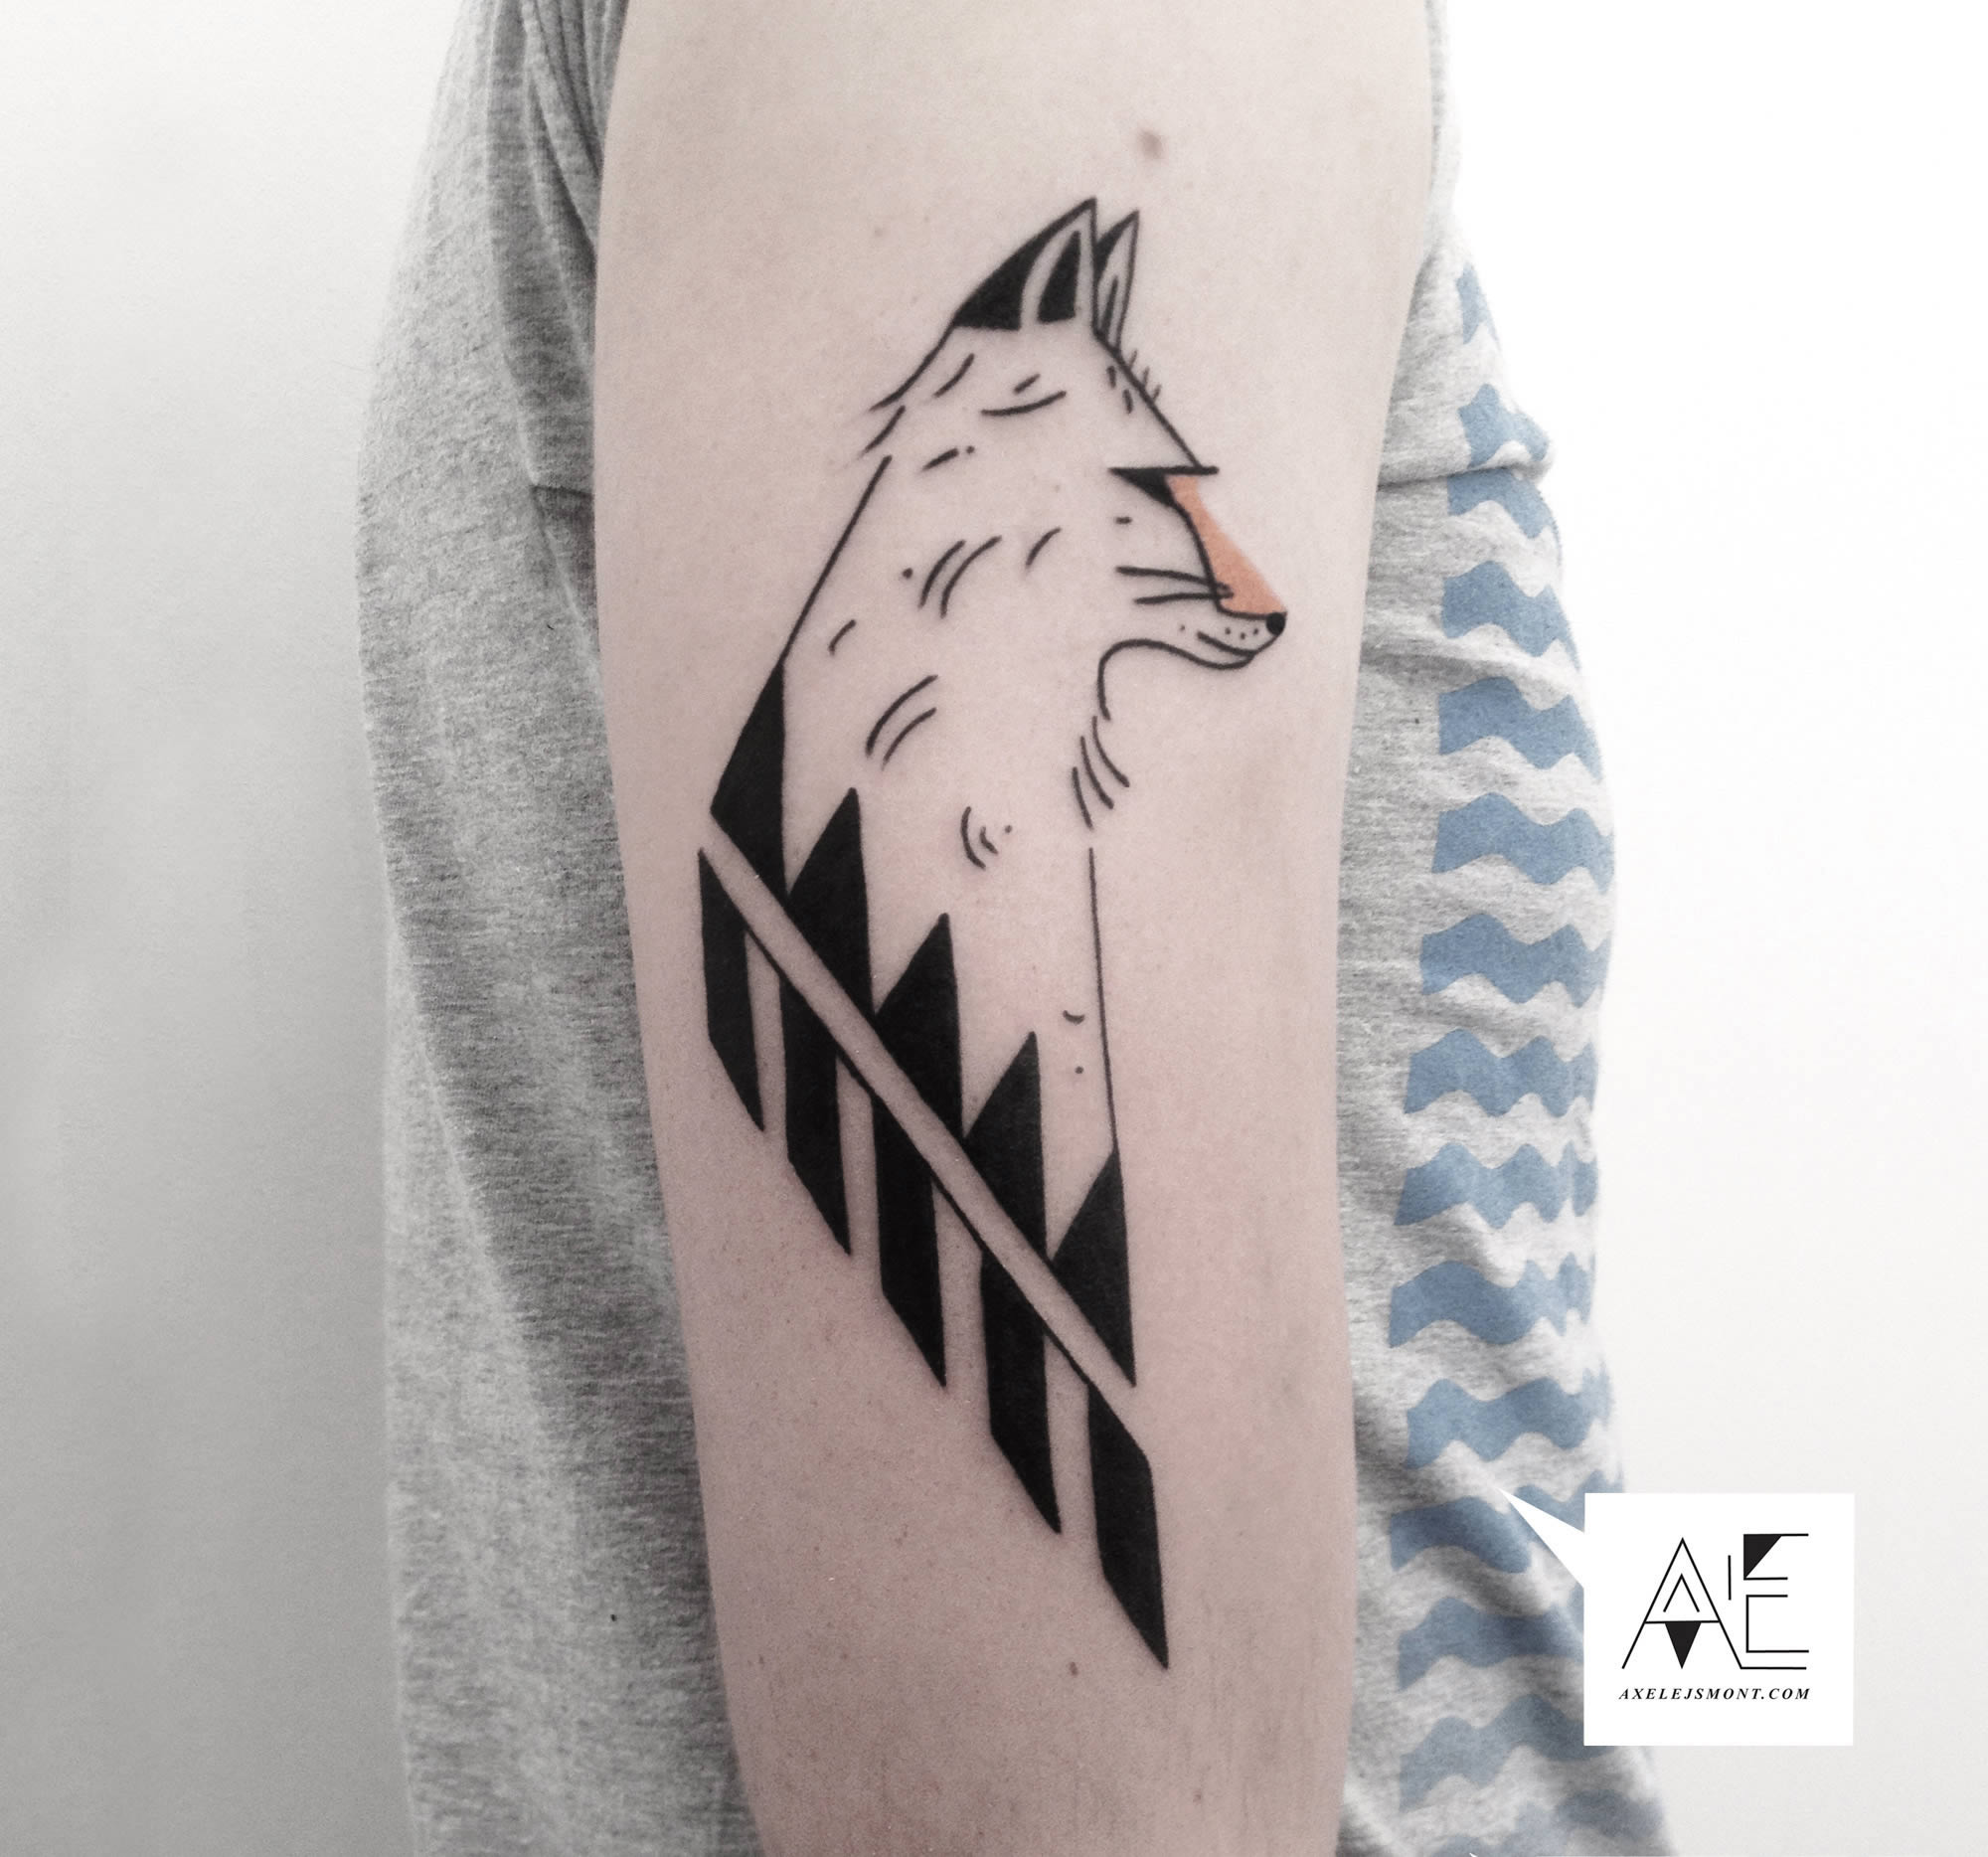 The Beautifully Minimalist Tattoos of Axel Ejsmont